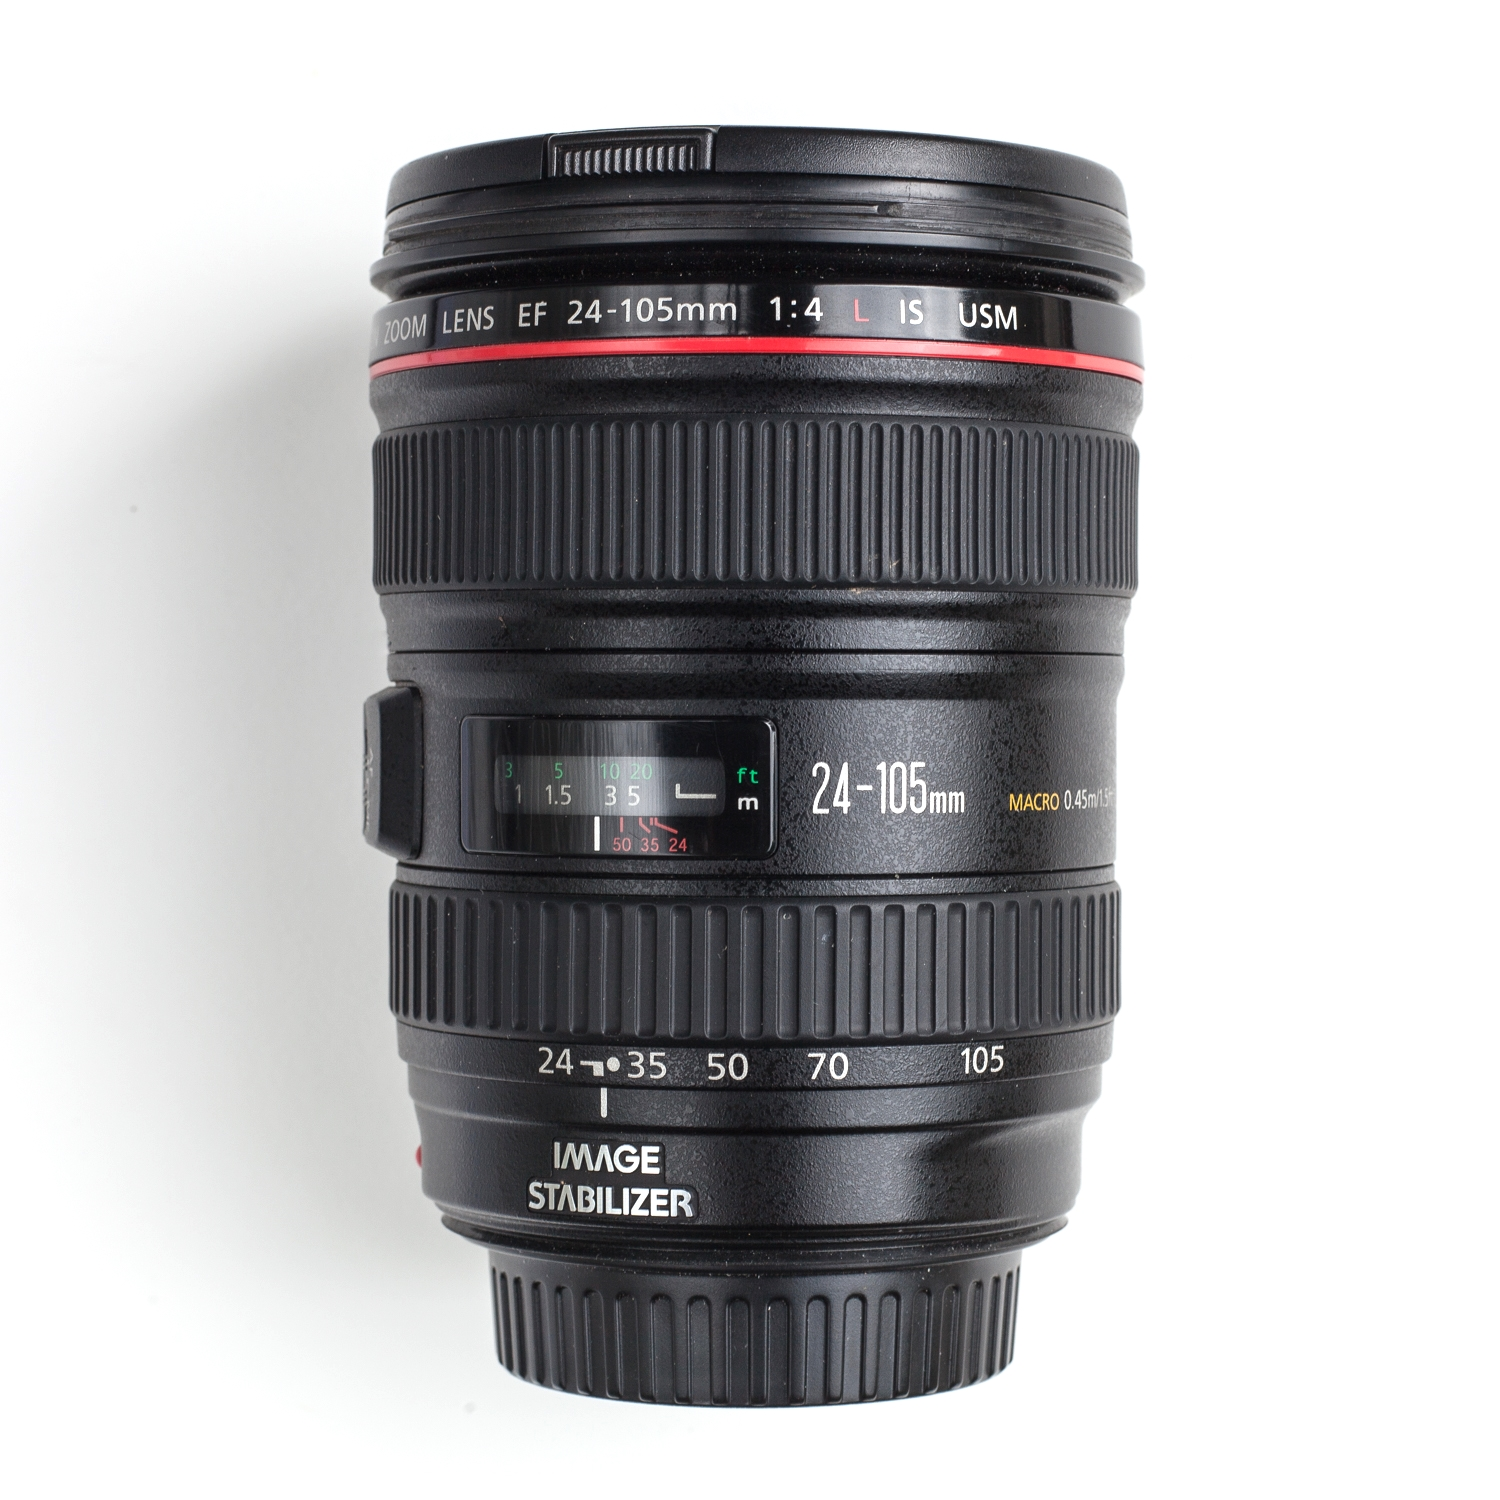 Canon 24-105mm f/4 IS USM